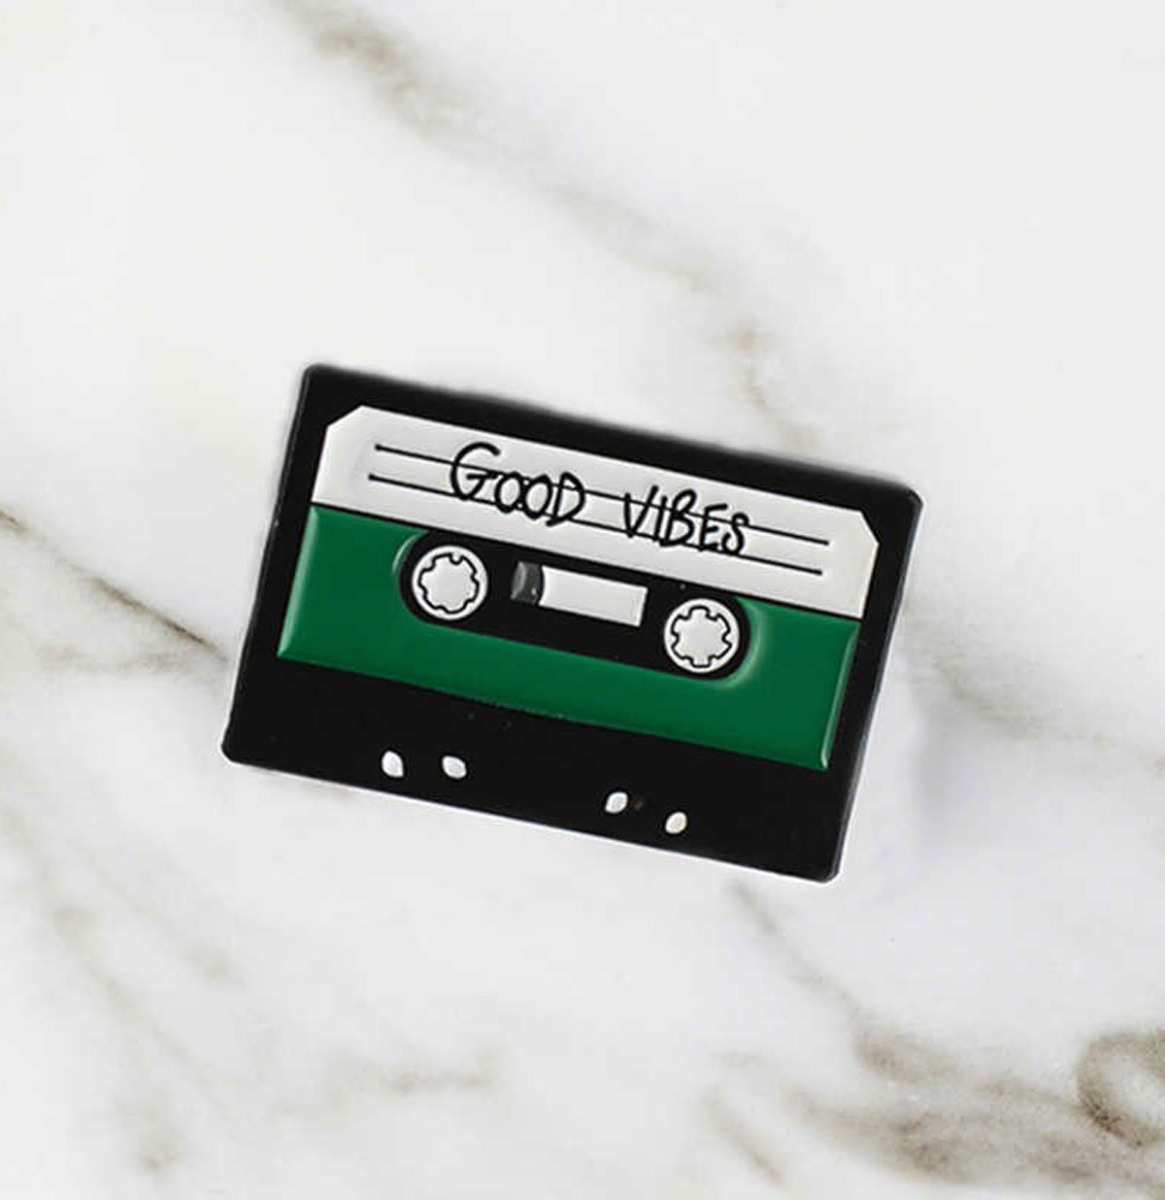 Good Vibes Cassette Bandje Emaille Pin